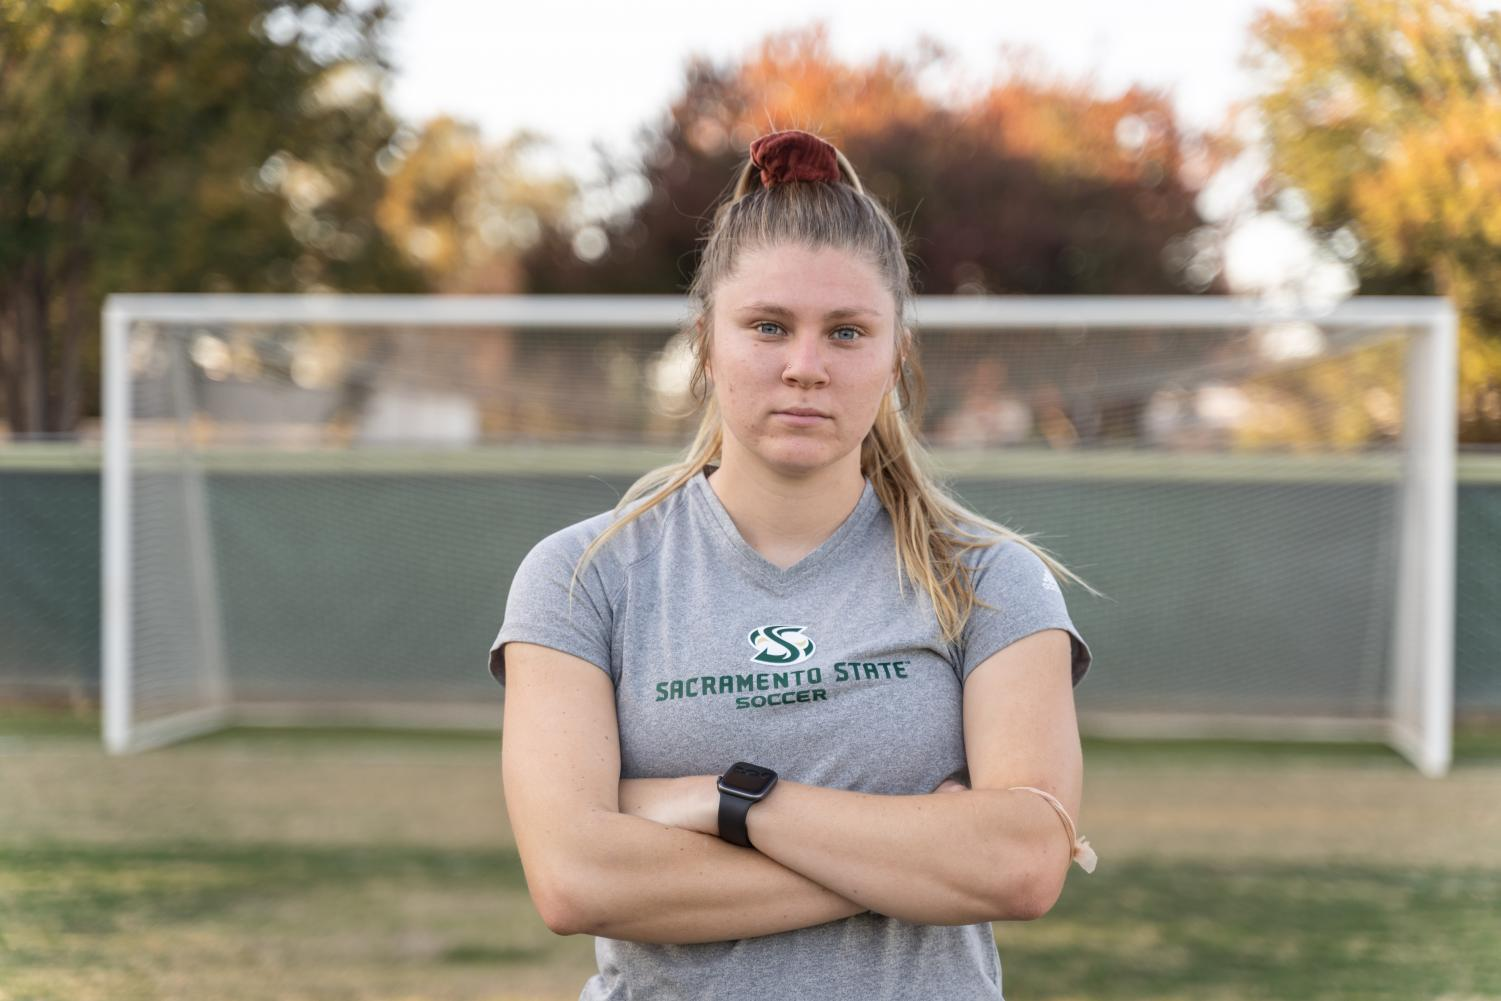 Sac State women's soccer junior midfielder Skylar Littlefield poses for a photo at Hornet Field. Littlefield suffered a concussion after being hit in the head by a soccer ball during a match in the 2019 season.